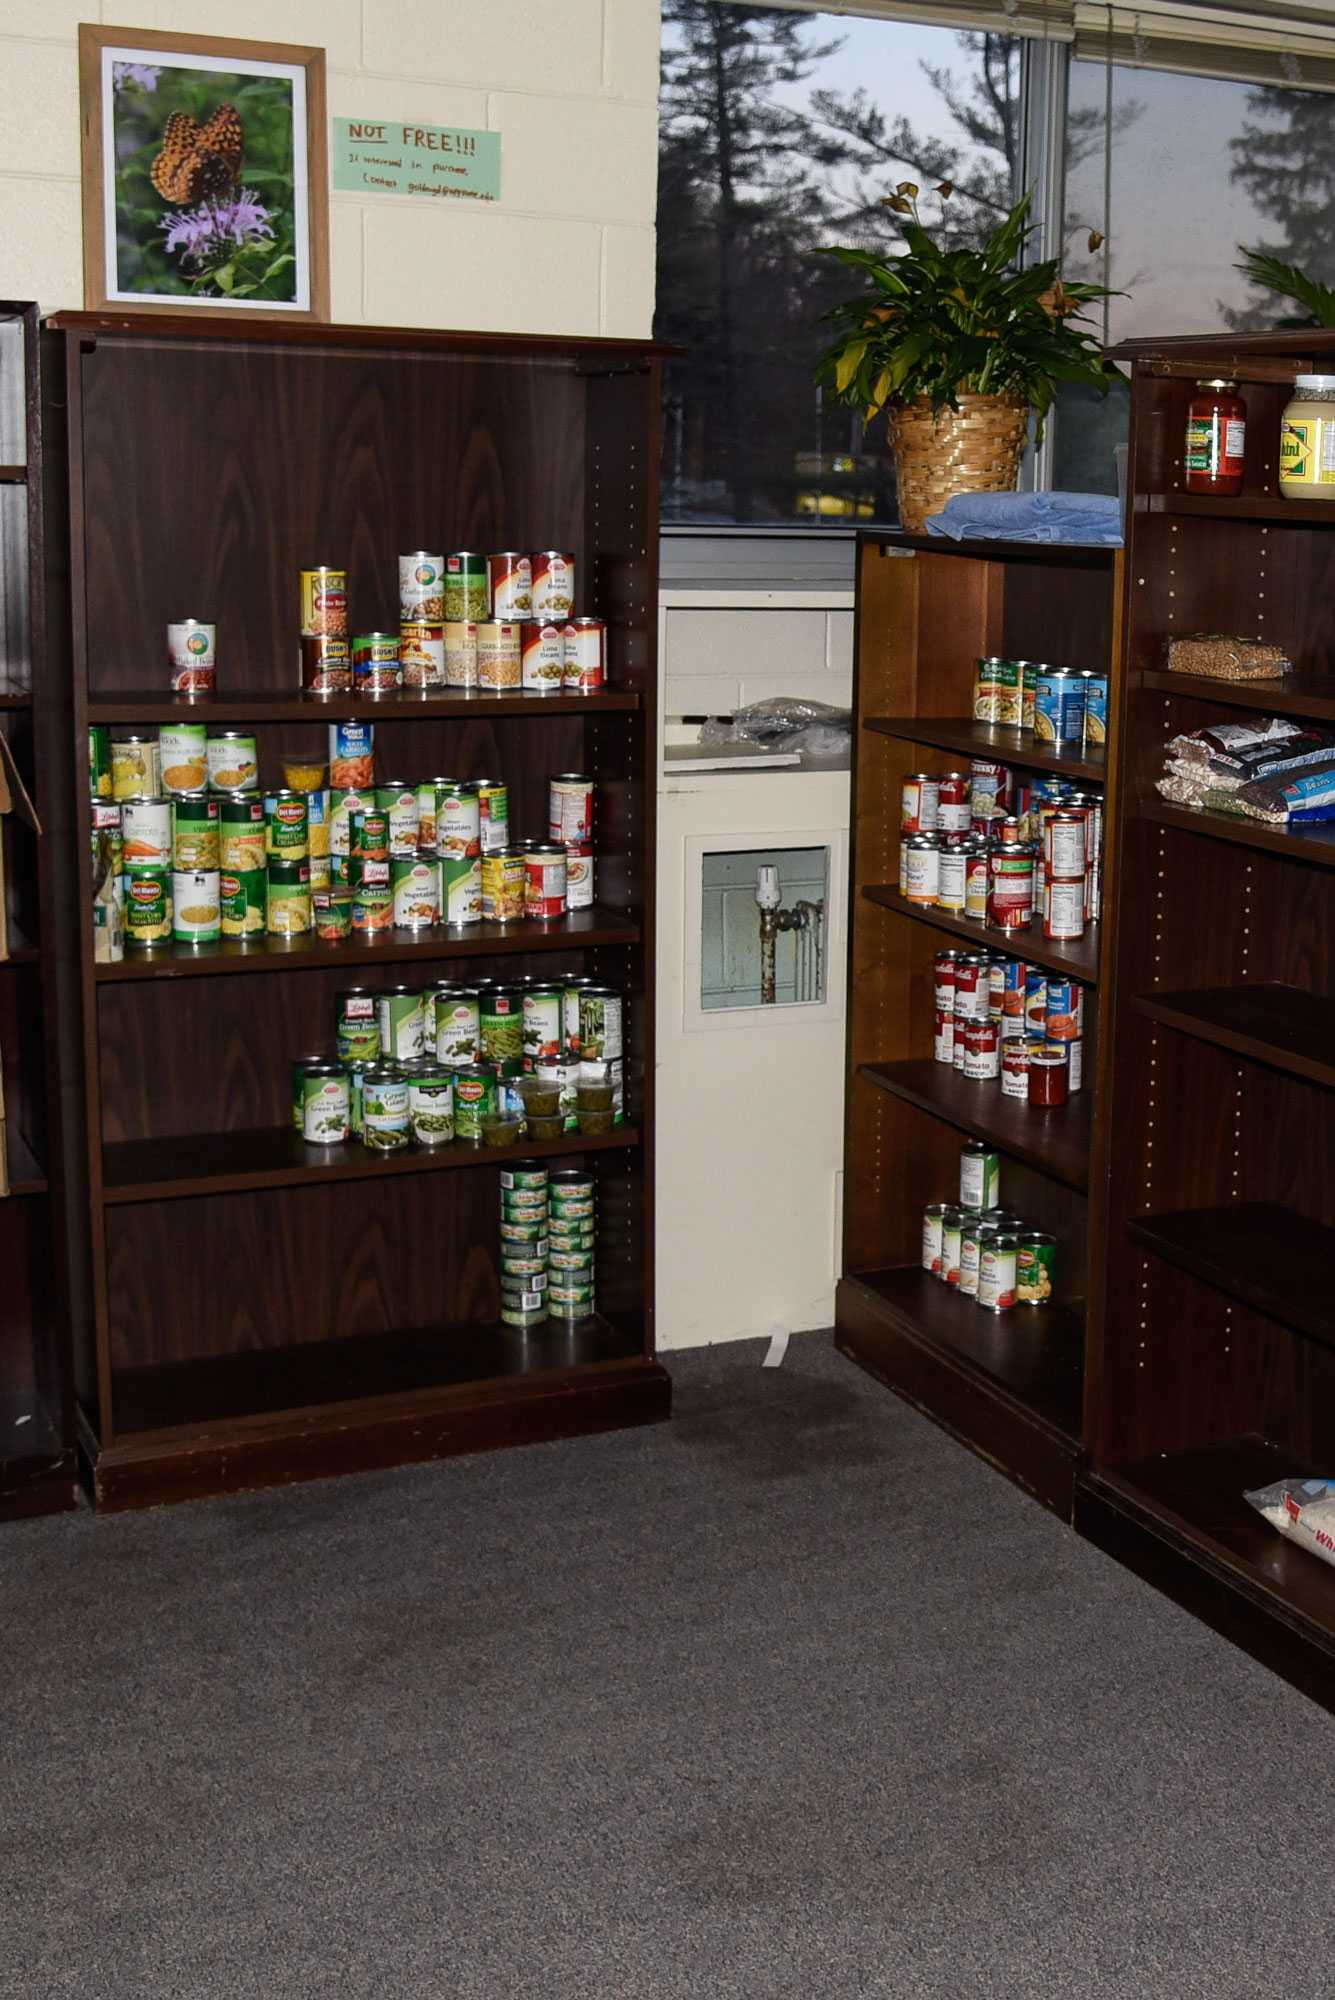 The+Office+of+Sustainability%E2%80%99s+food+pantry.+The+pantry+is+located+on+campus+in+the+basement+of+East+Hall.